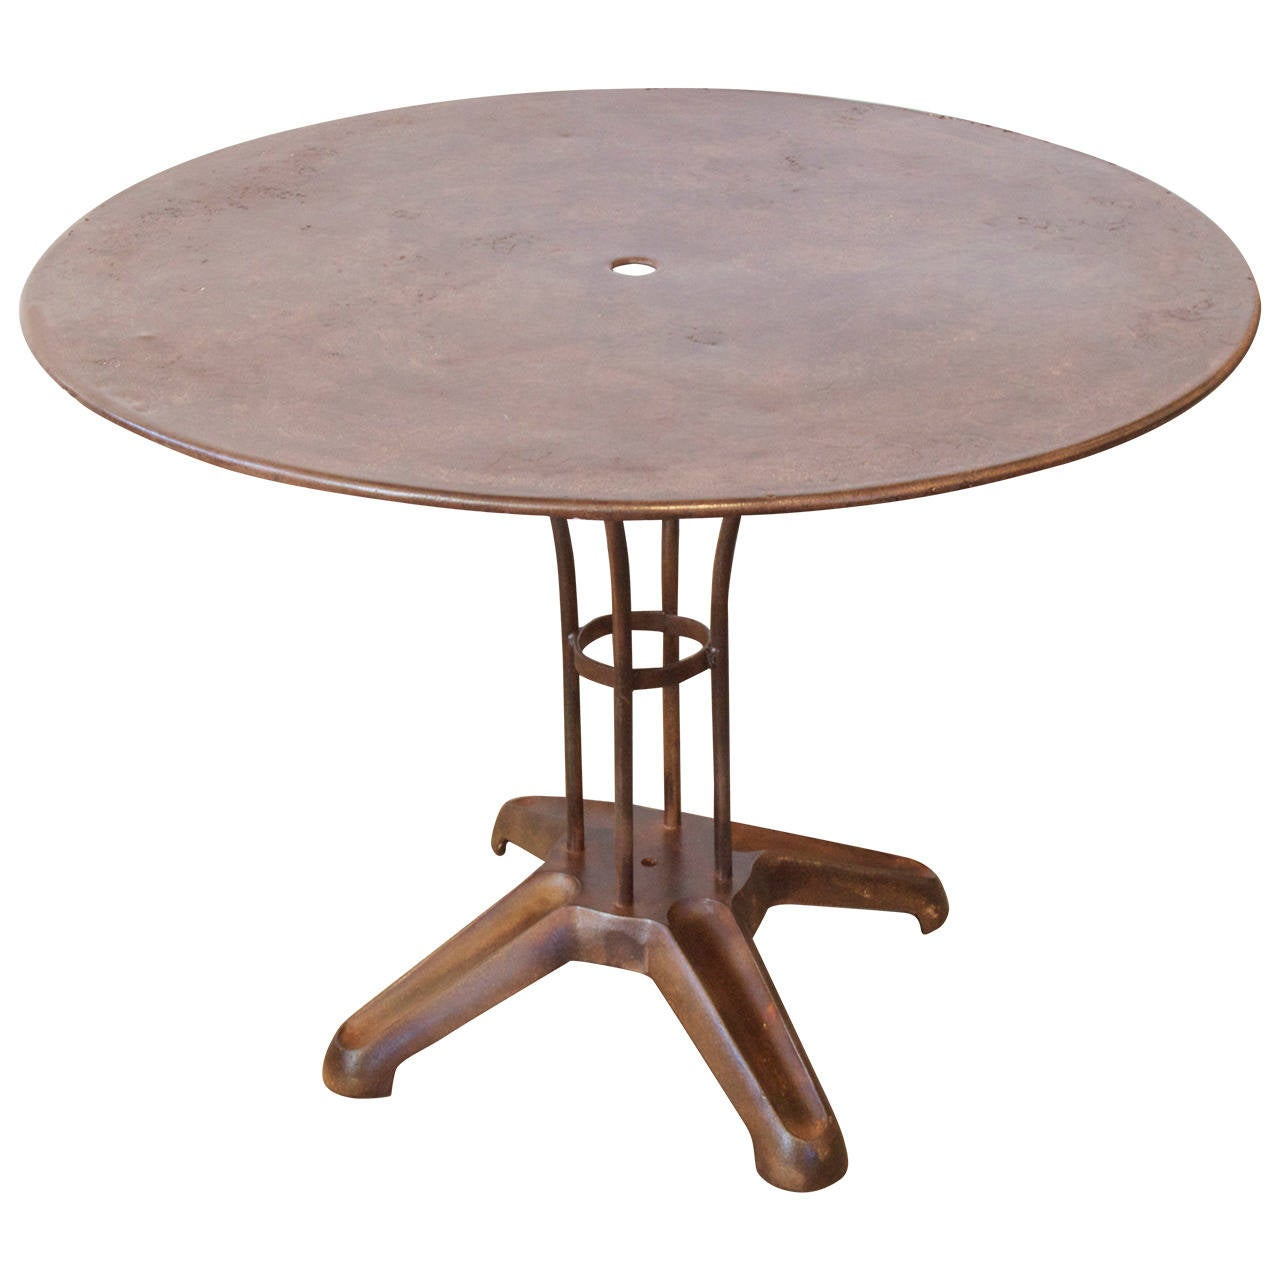 French industrial metal garden table at 1stdibs French metal garden furniture